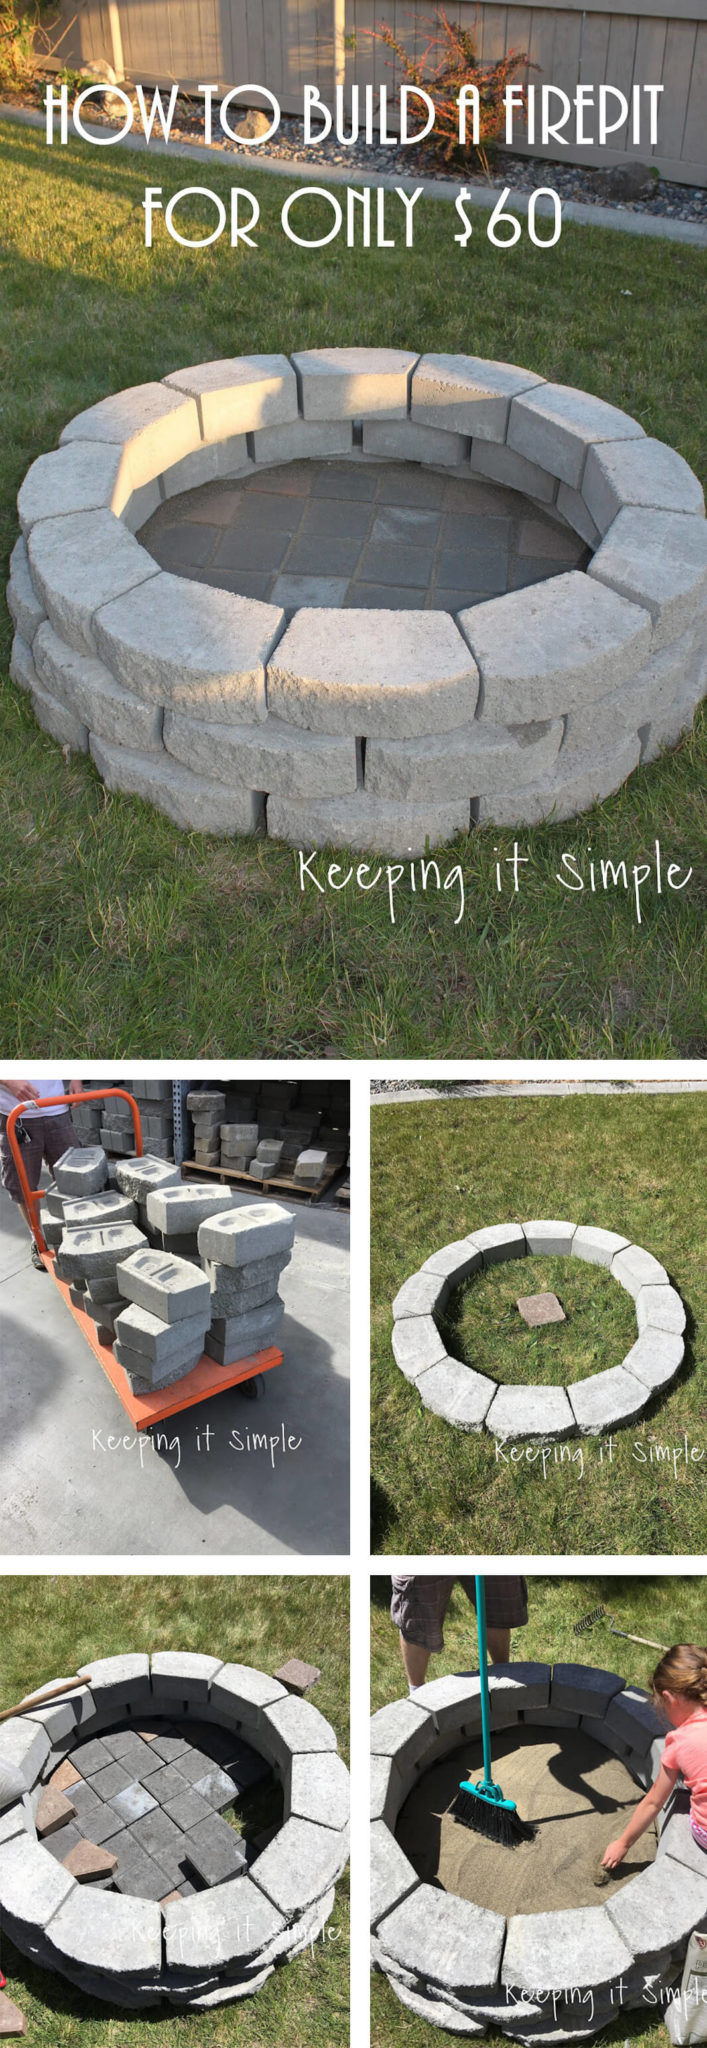 50 Easy DIY Fire Pit Design Ideas for 2018 | Advantages & How To ...